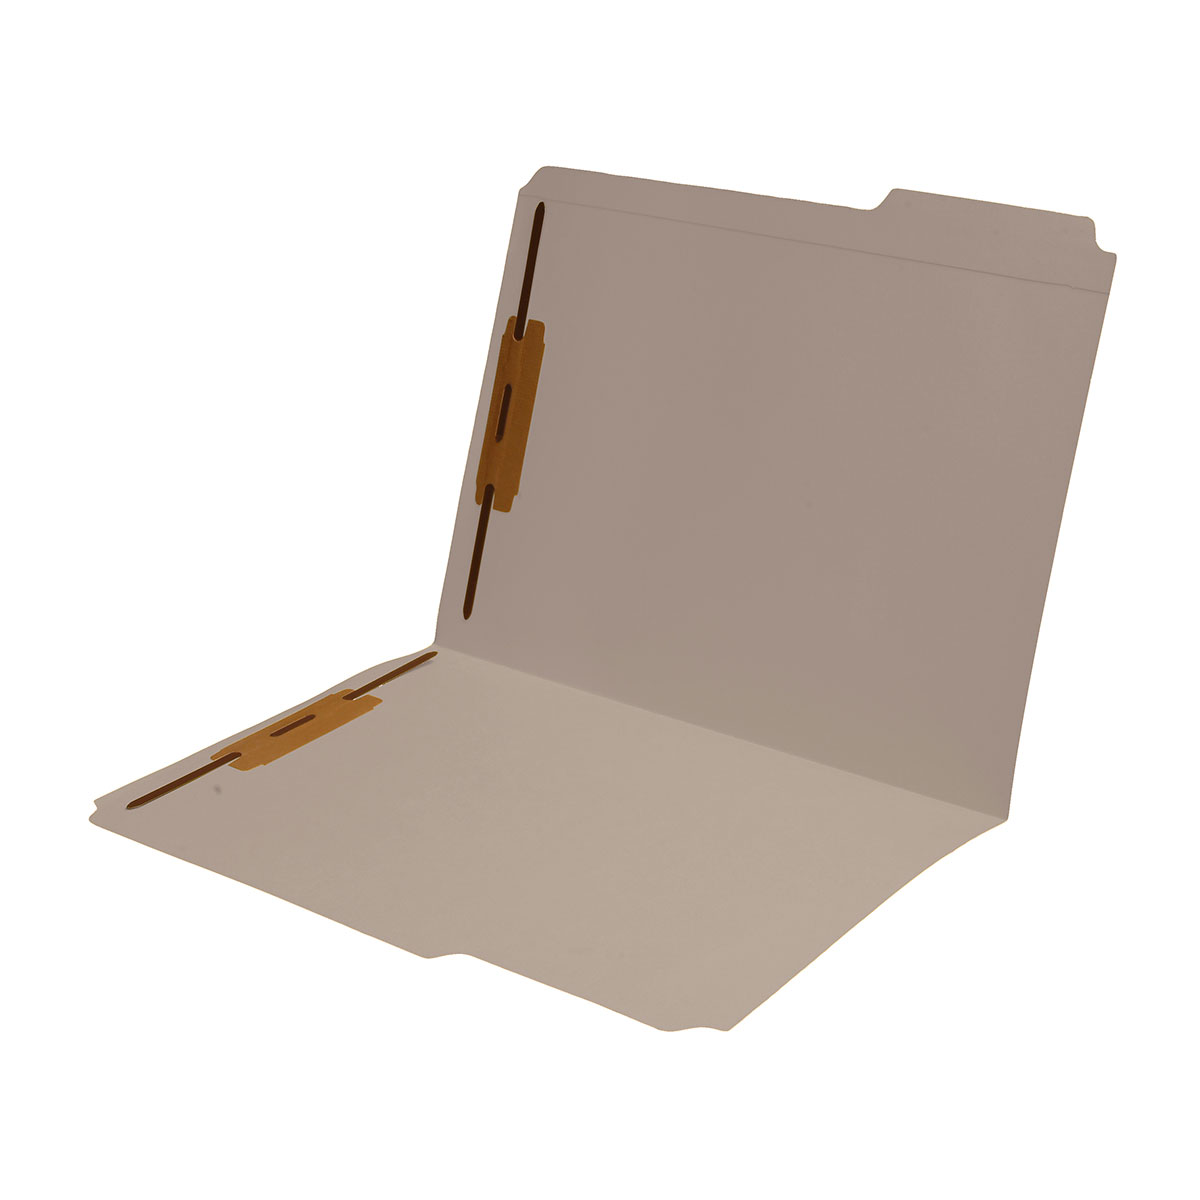 S-9042-GRY - 11 pt Gray Folders, 1/3 Cut Reinforced Top Tab - Assorted, Letter Size, Fastener Pos #1 and #3 (Box of 50)